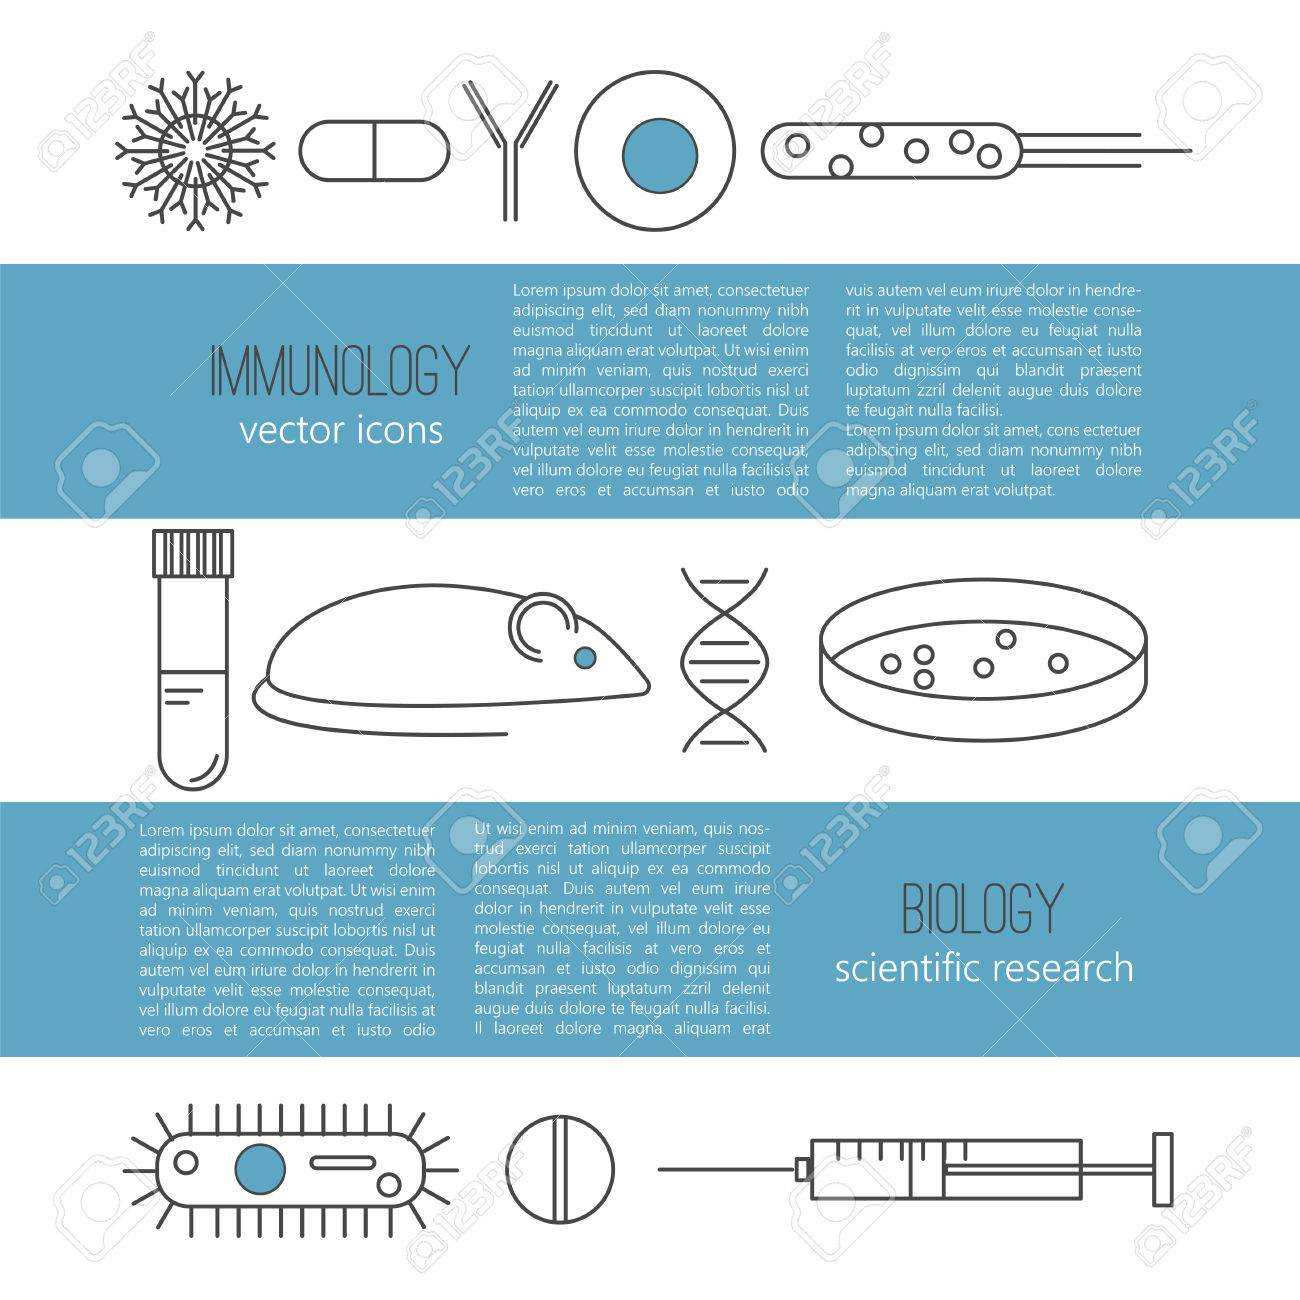 Scientific presentation powerpoint template gallery templates scientific presentation powerpoint template gallery templates scientific presentation template brettfranklin immunology research icons on scientific toneelgroepblik Image collections